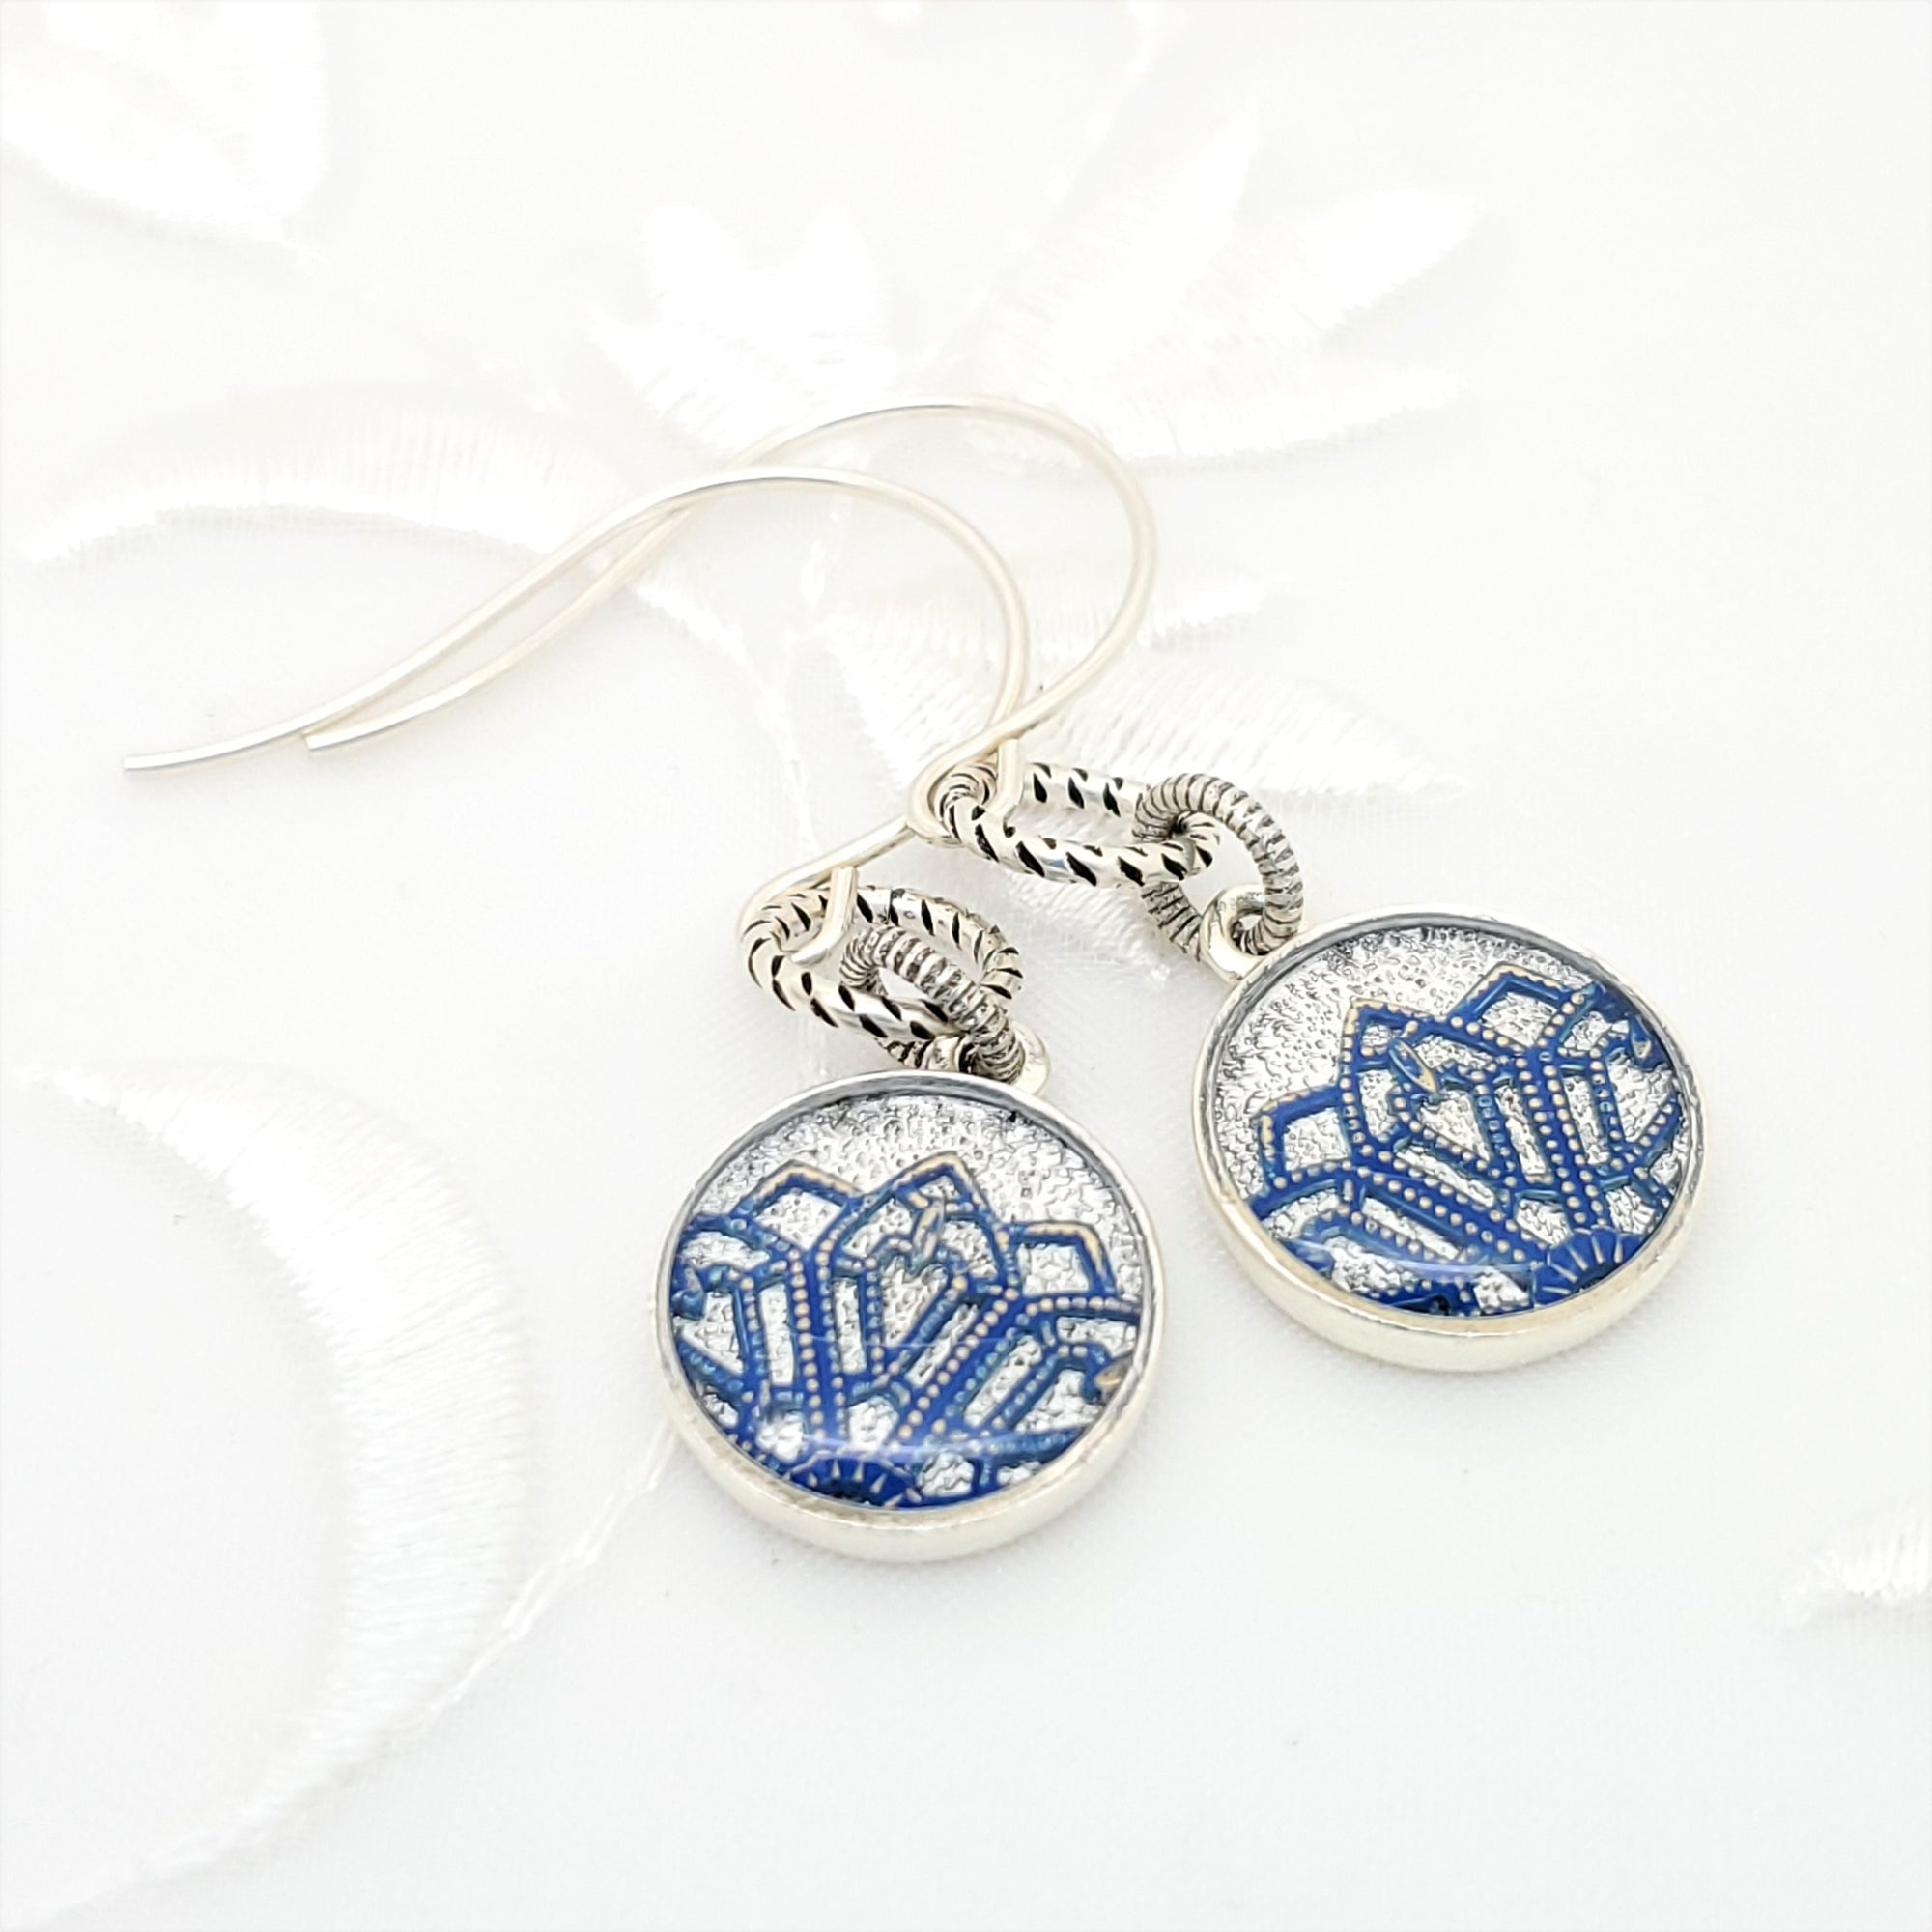 Antique Silver Round Earrings with Dark Blue Filigree